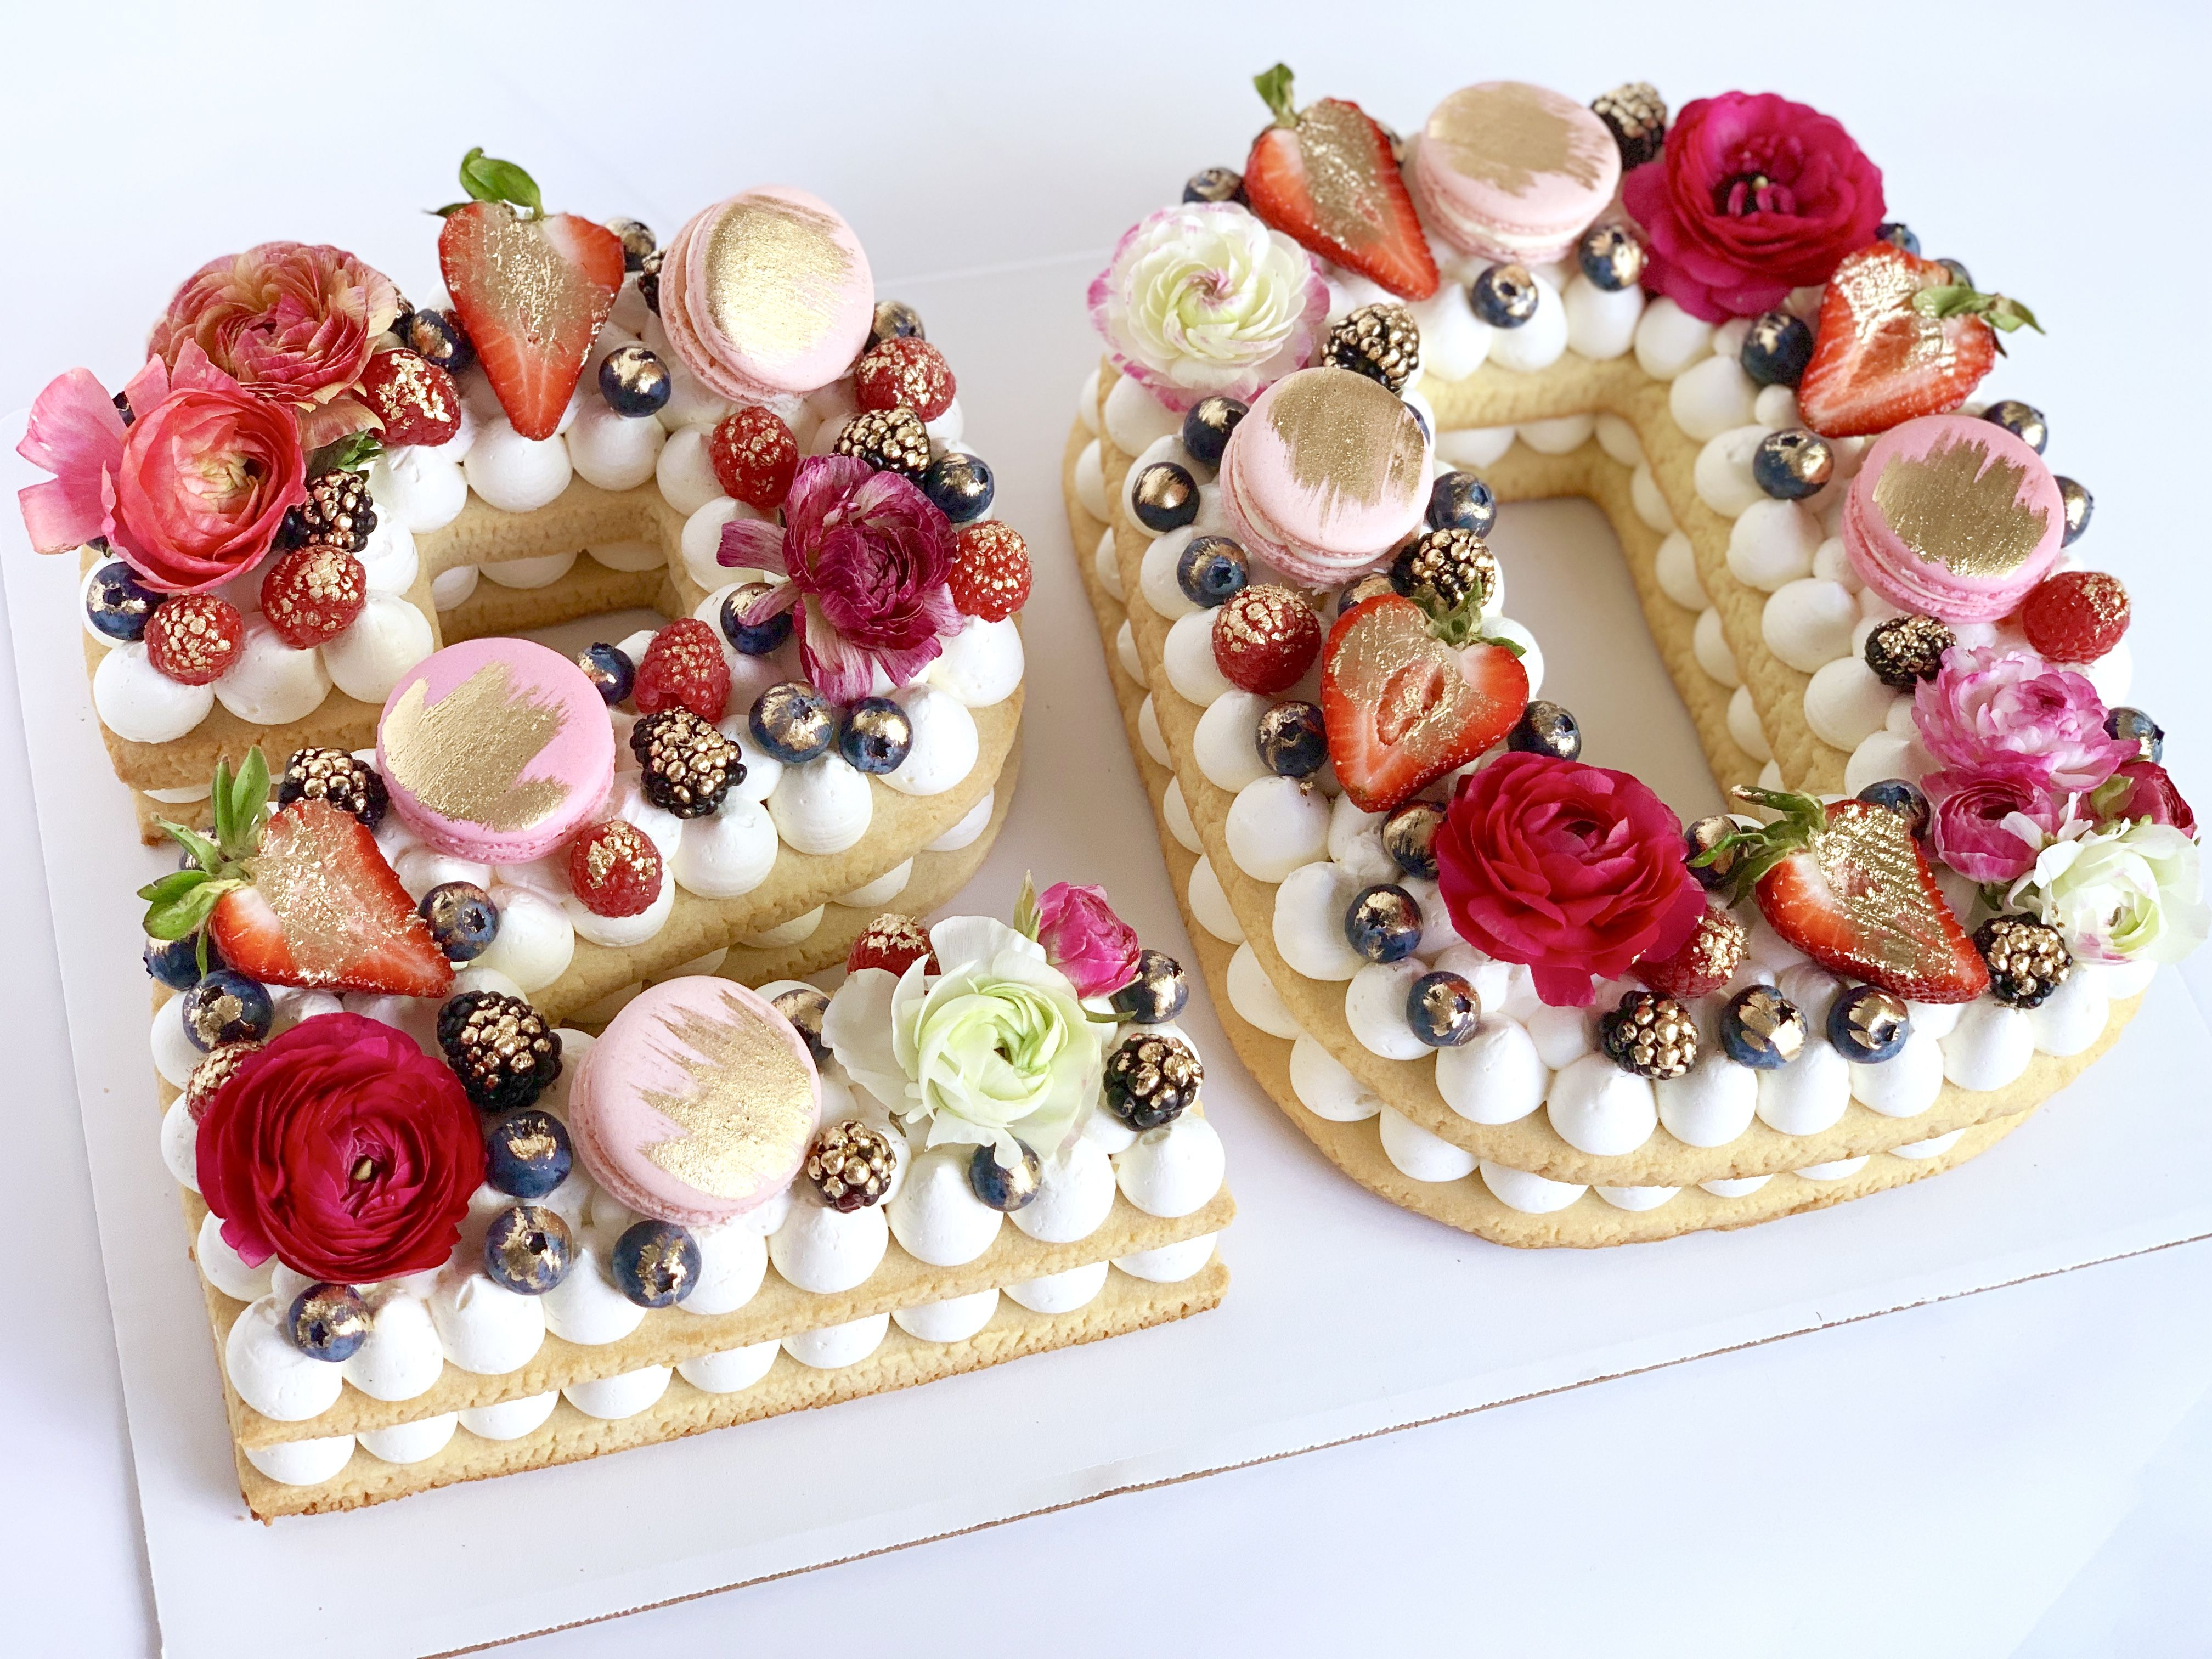 Cookie cake with flowers macaroons and fresh fruits